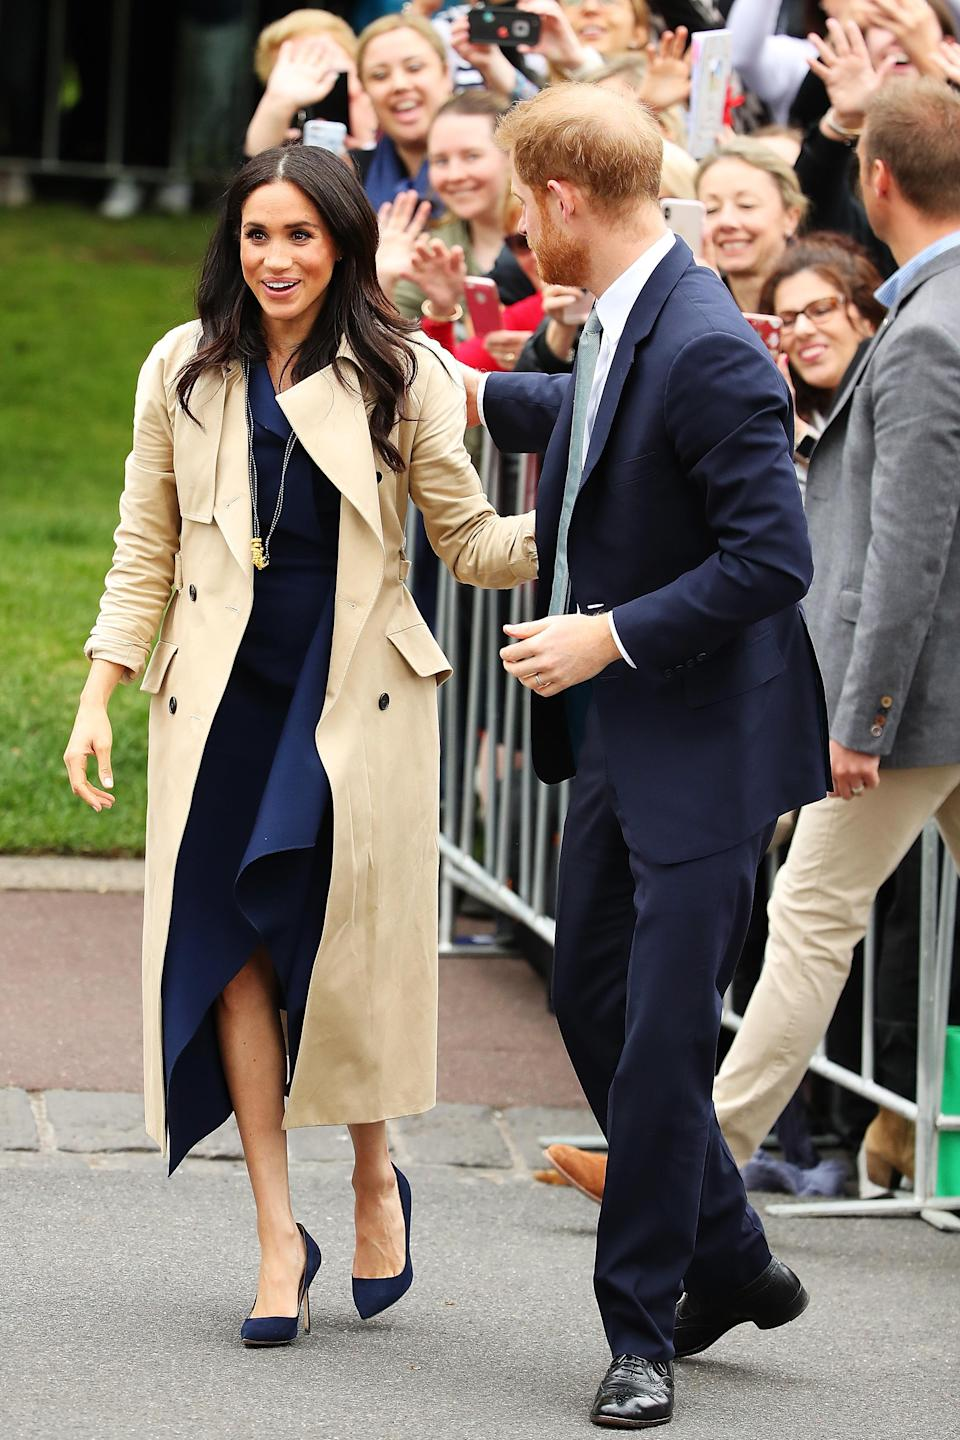 <p>Heading to Melbourne with her husband Prince Harry, the Duchess of Sussex opted for a classic navy frock by Australian designer Dion Lee. Photo: Getty </p>